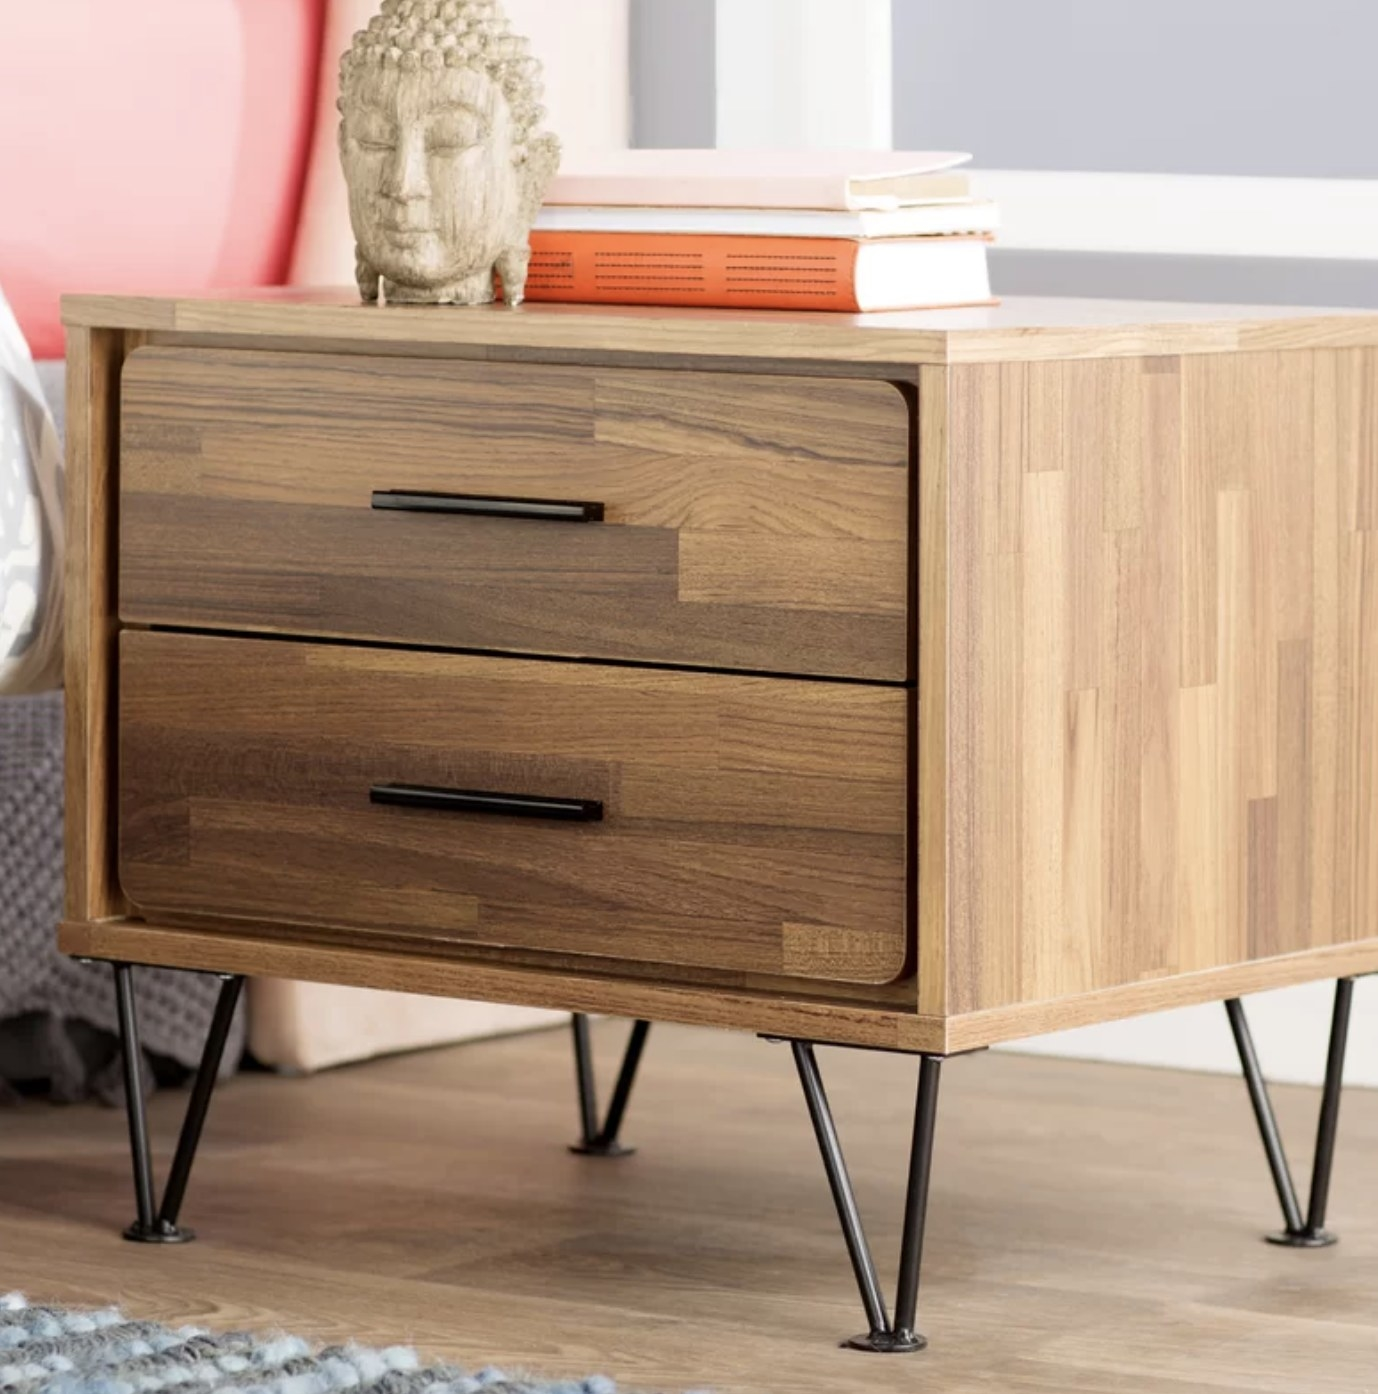 the nightstand in walnut